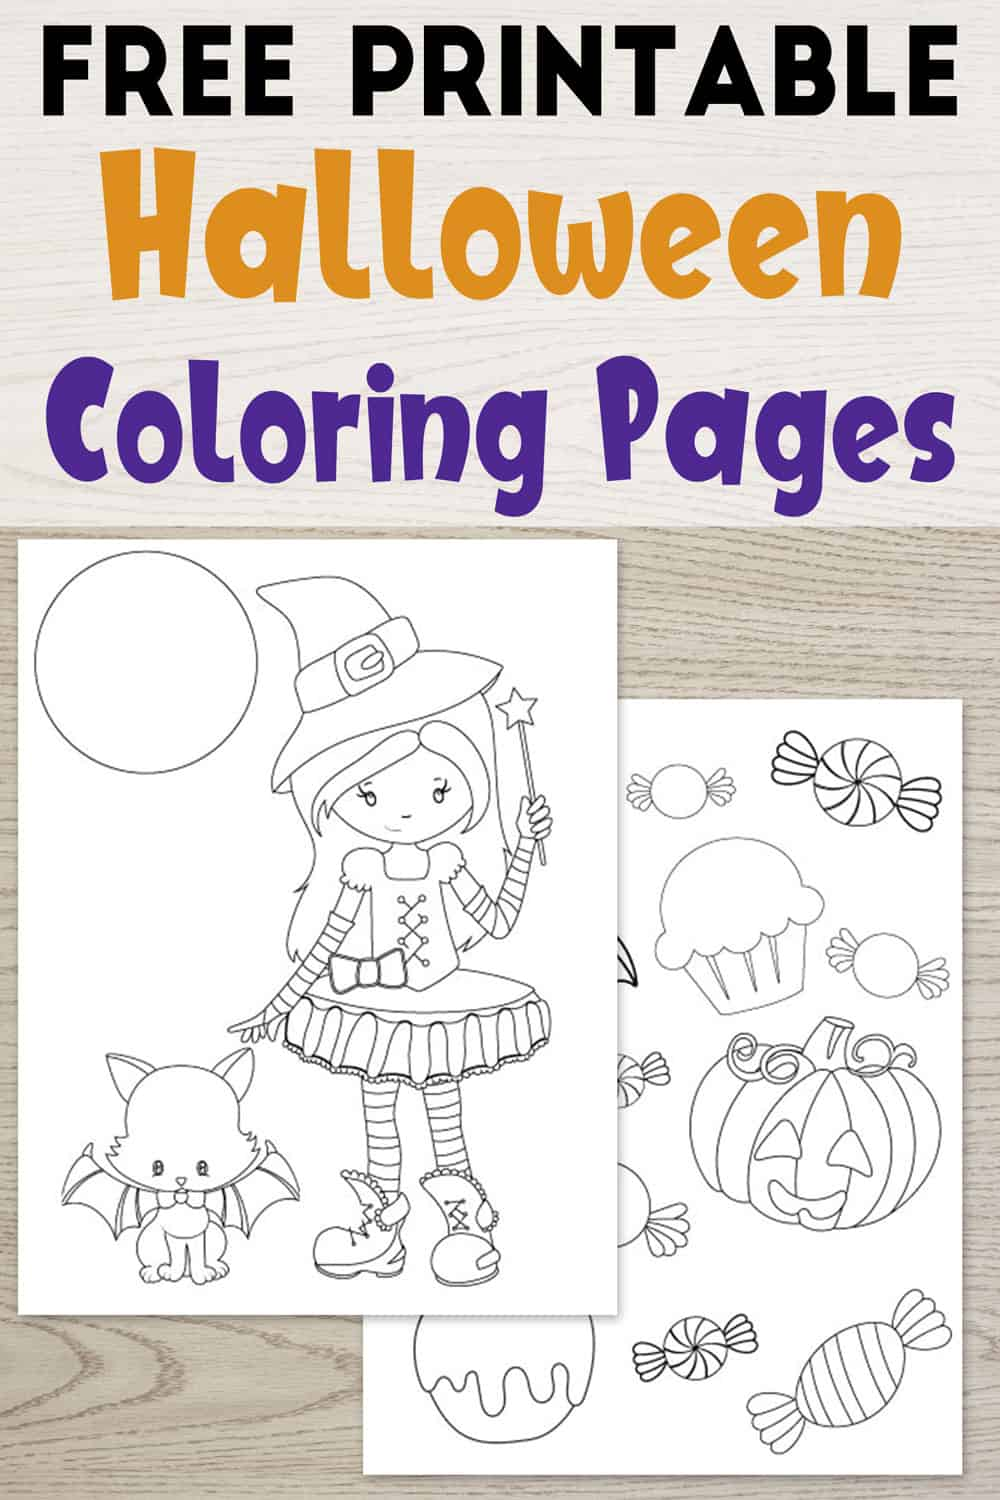 Halloween Coloring Pages by Ms Ds Classroom | Teachers Pay Teachers | 1500x1000